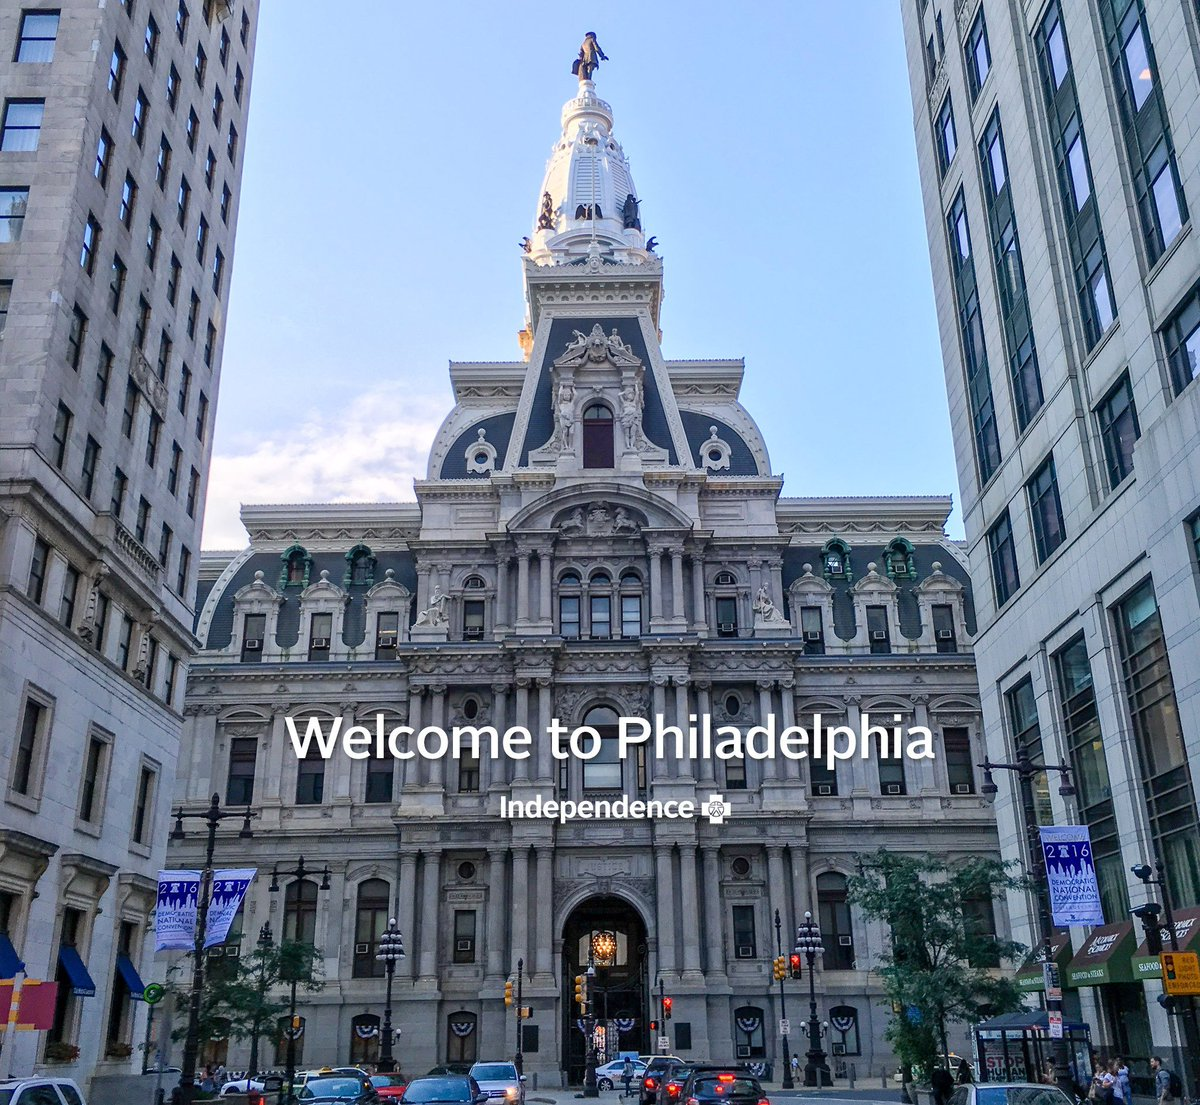 Headquartered in #Philly for nearly 80 yrs, IBX proudly welcomes the #DNCinPHL to our beautiful hometown! https://t.co/WYwMXkUFih